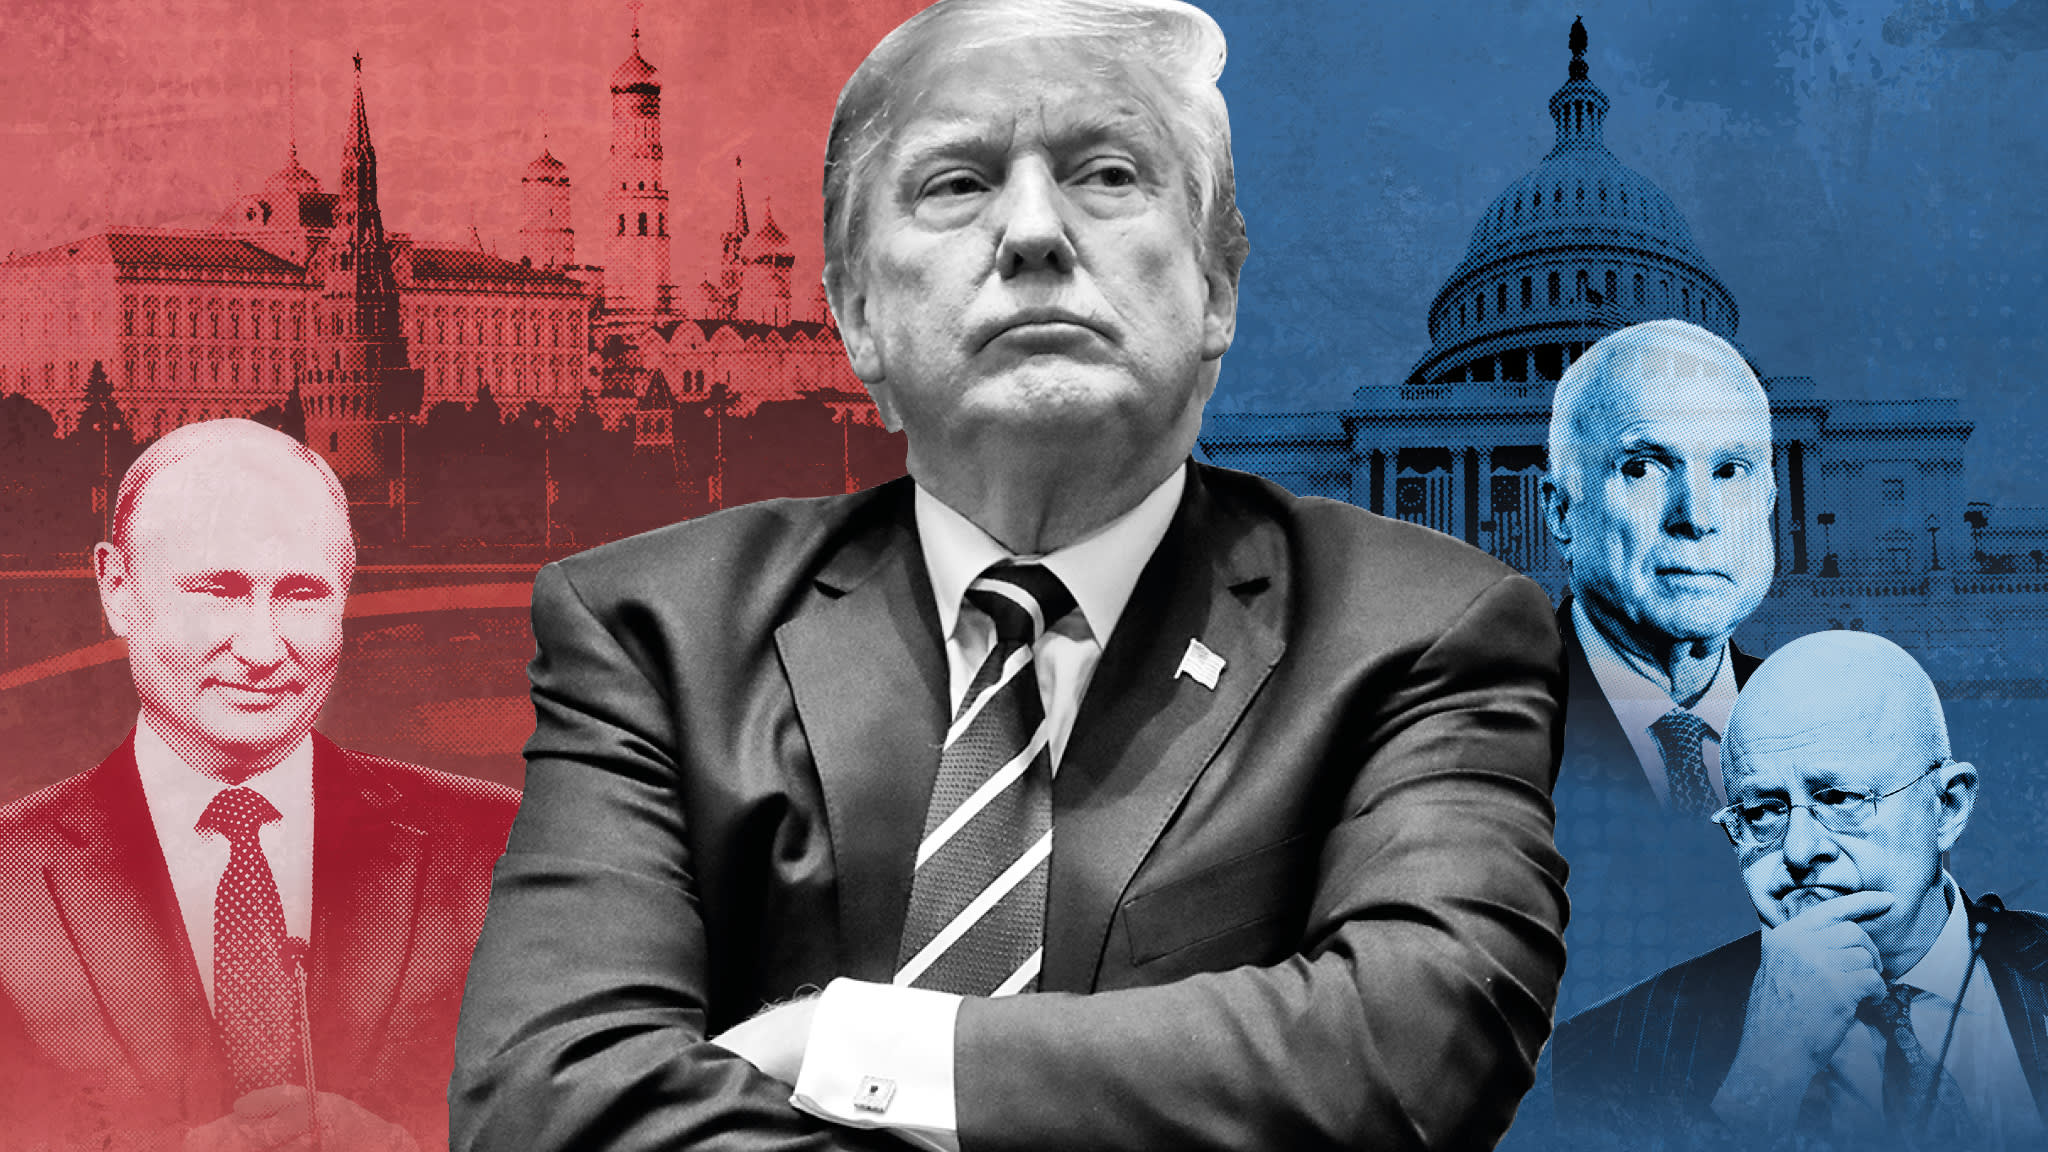 Helsinki is turning point in Republican relations with Trump